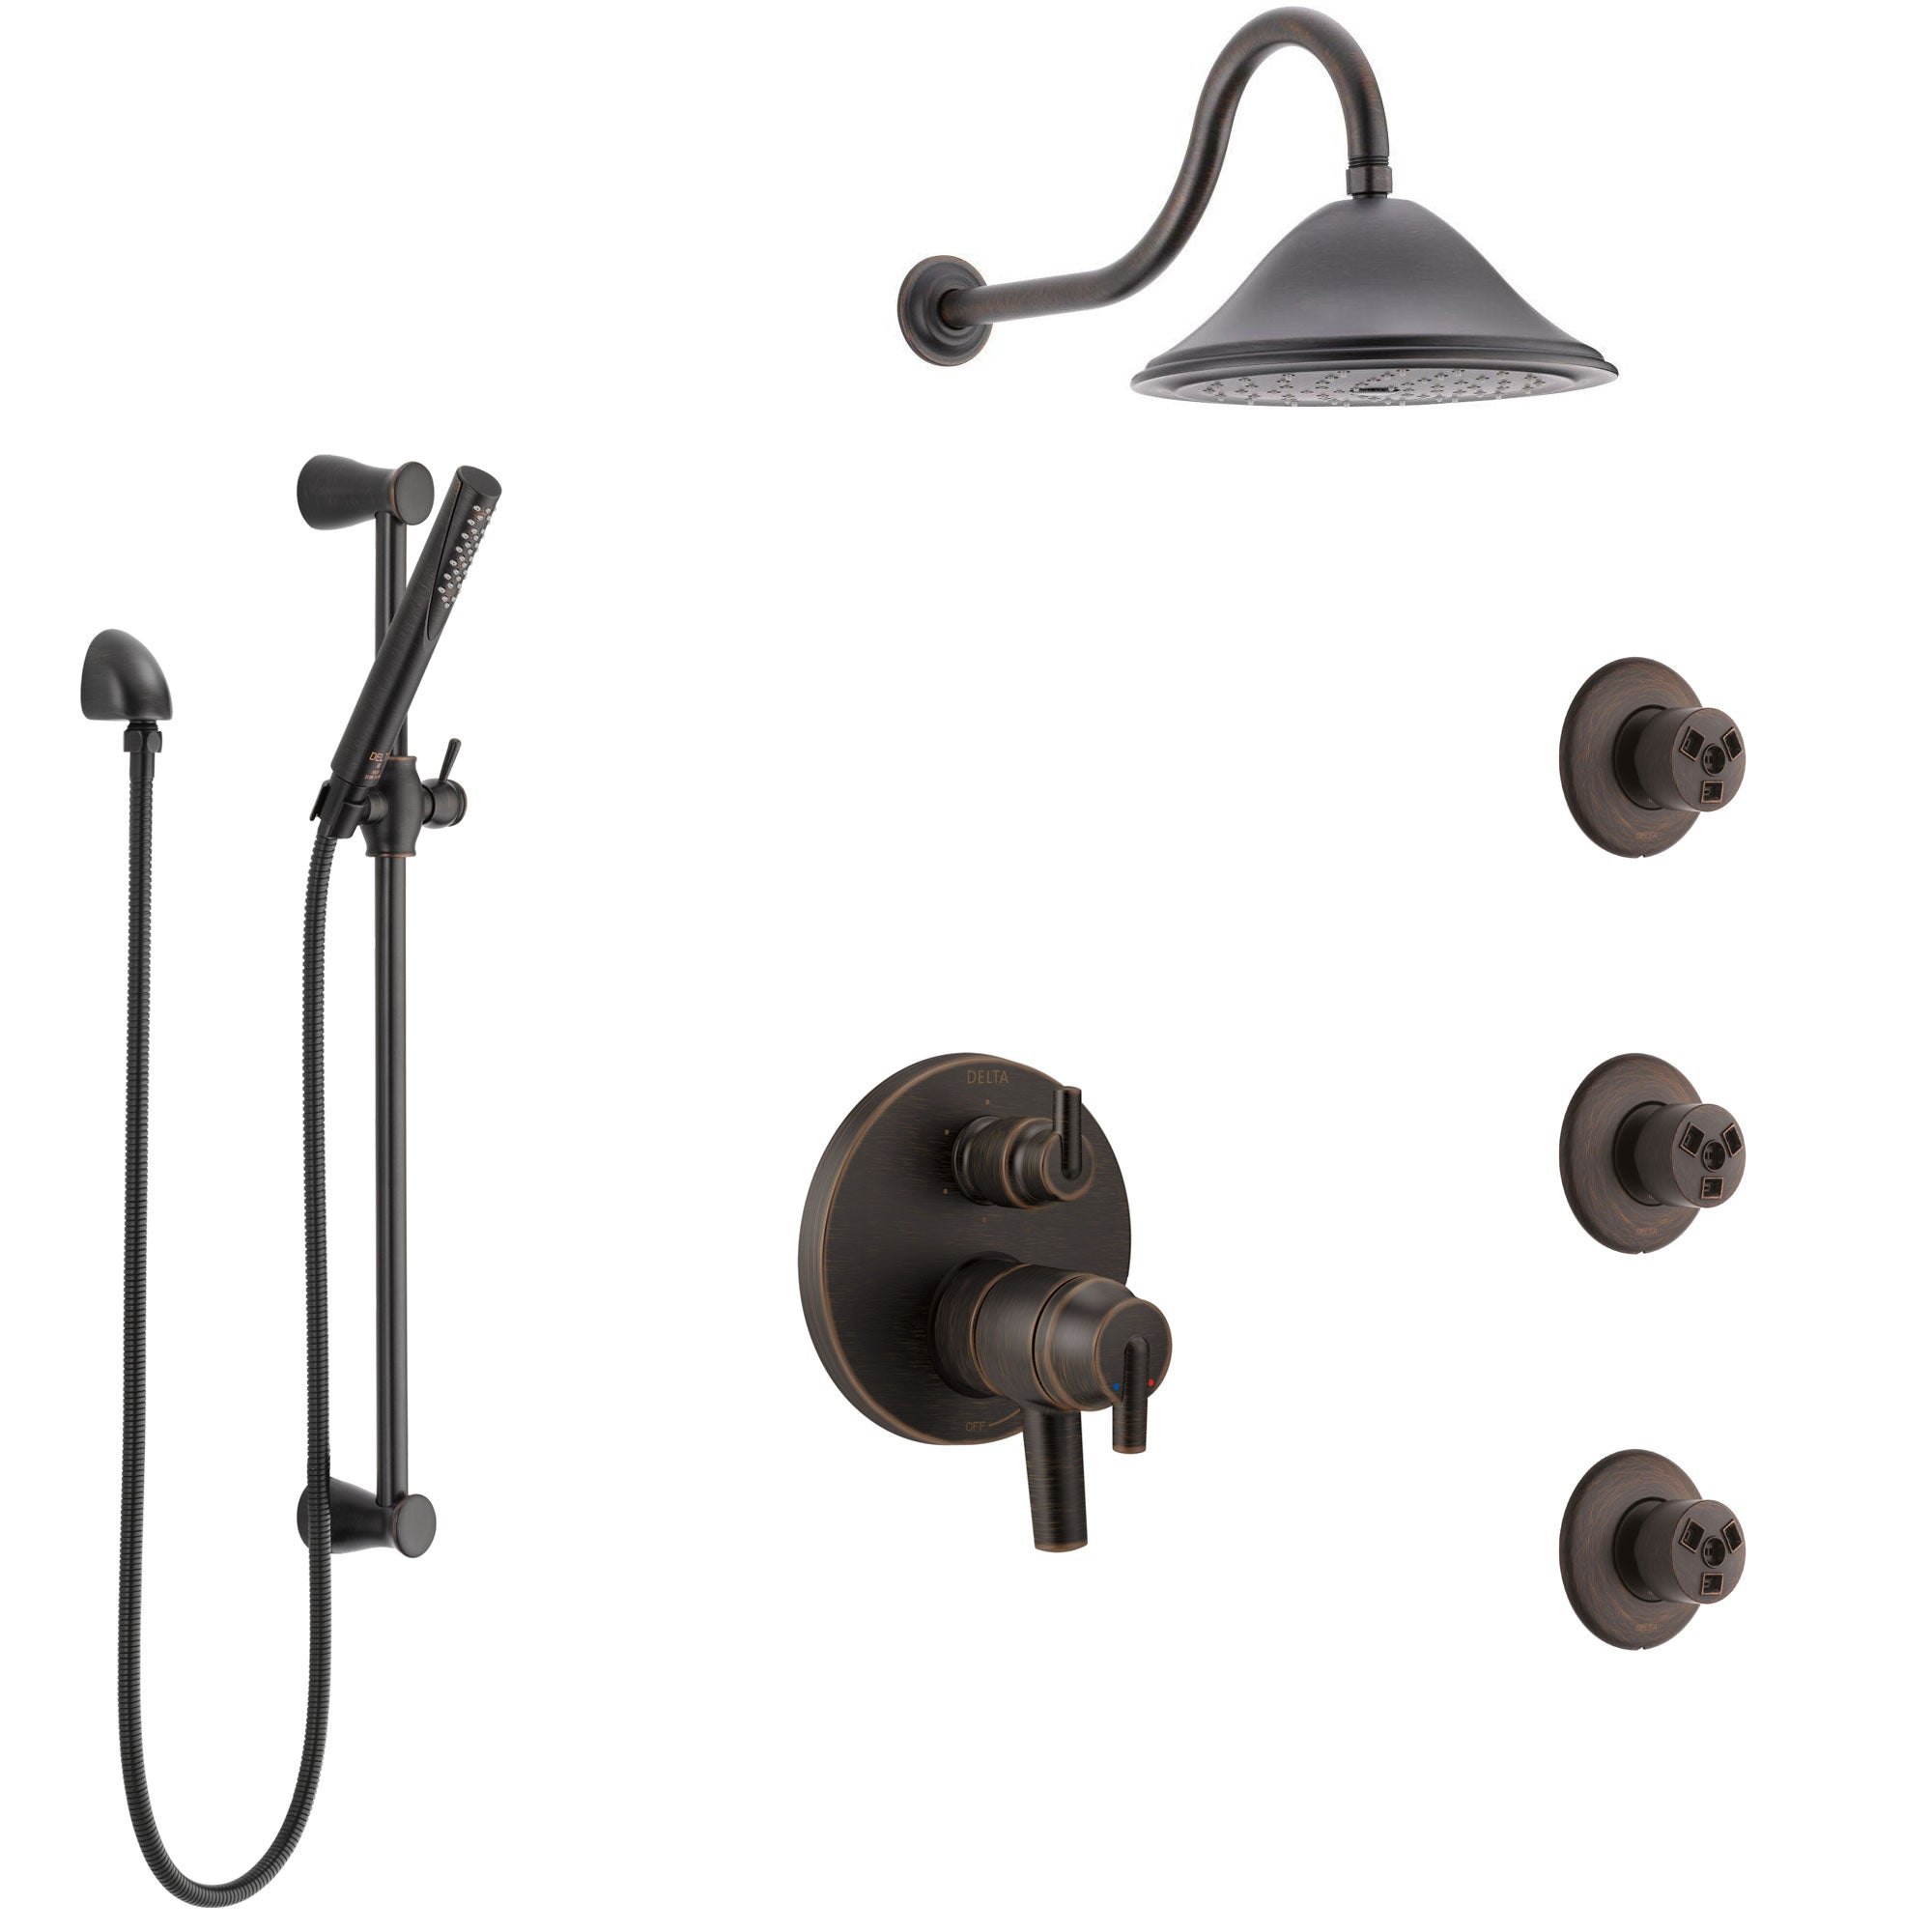 Delta Trinsic Venetian Bronze Shower System with Dual Control Handle, Integrated Diverter, Showerhead, 3 Body Sprays, and Hand Shower SS27959RB11